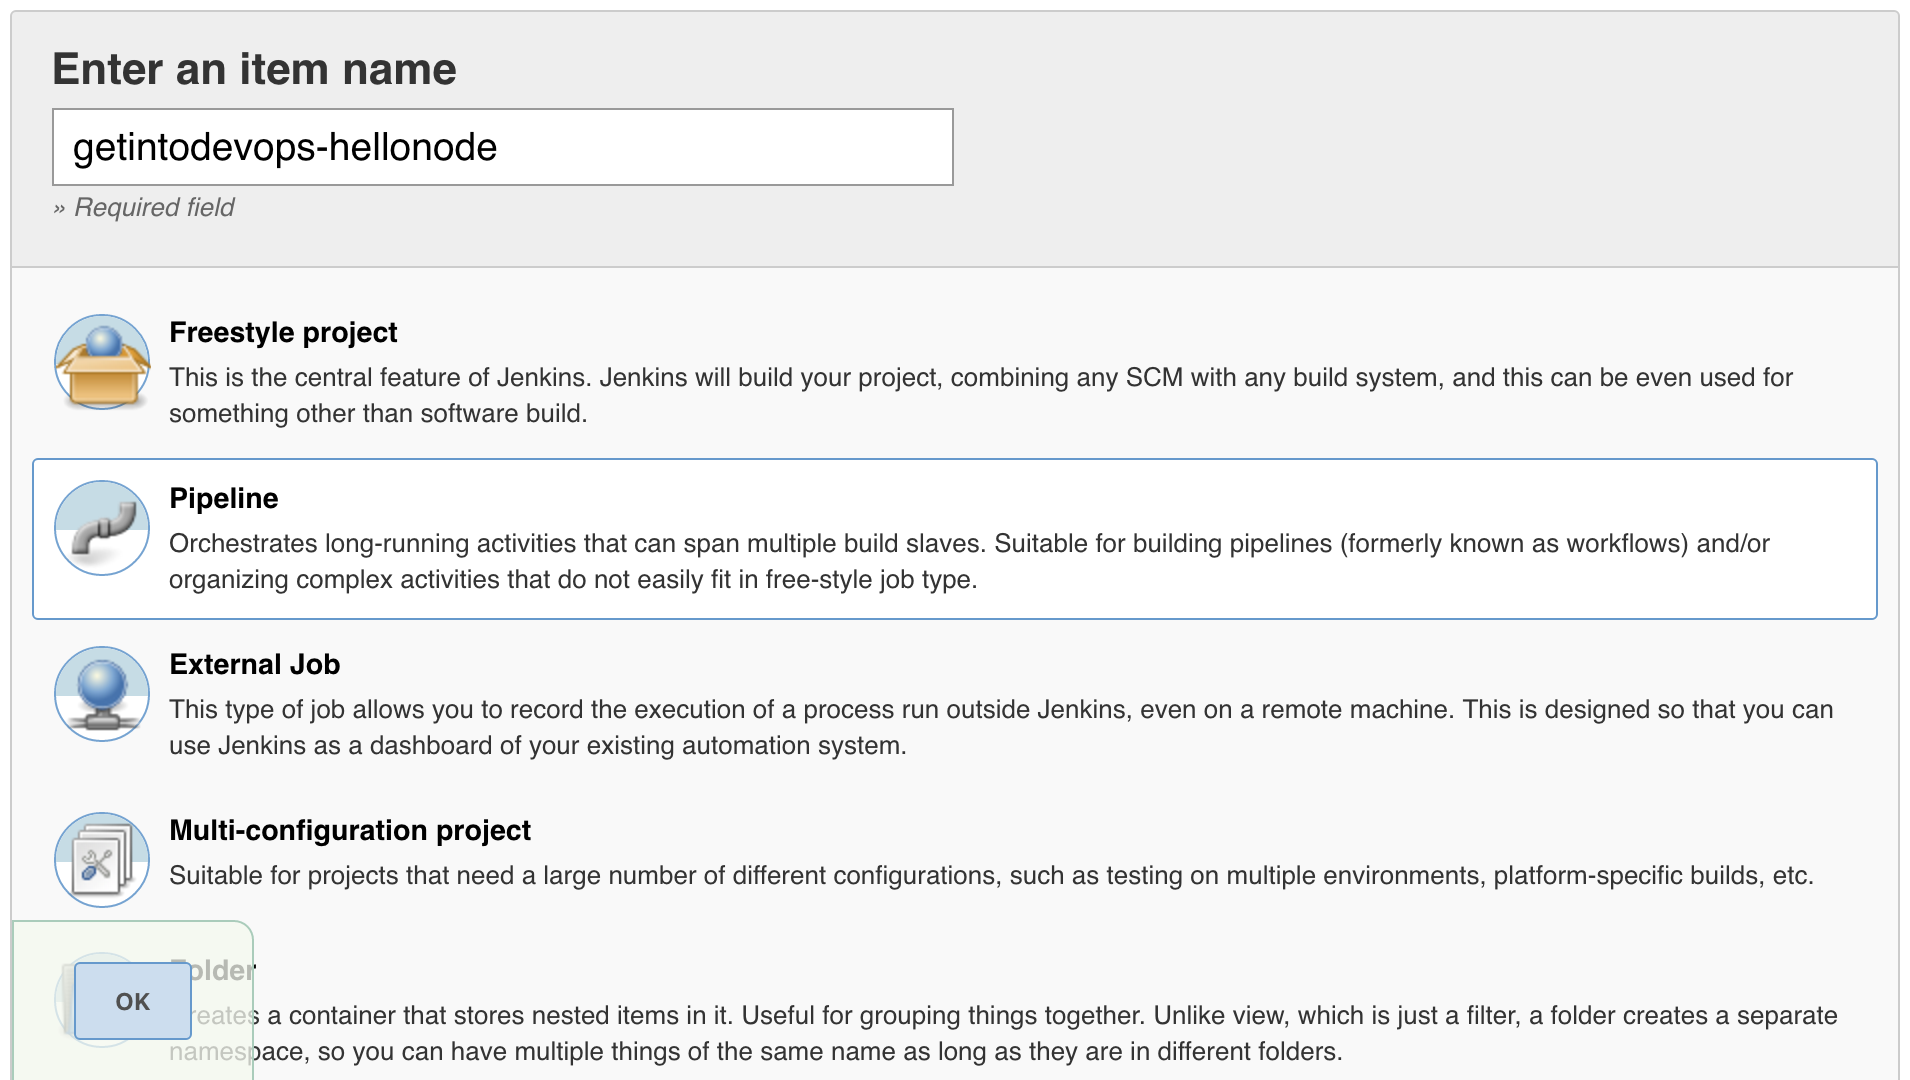 Type a name for your project, and select  Pipeline  as the project type.